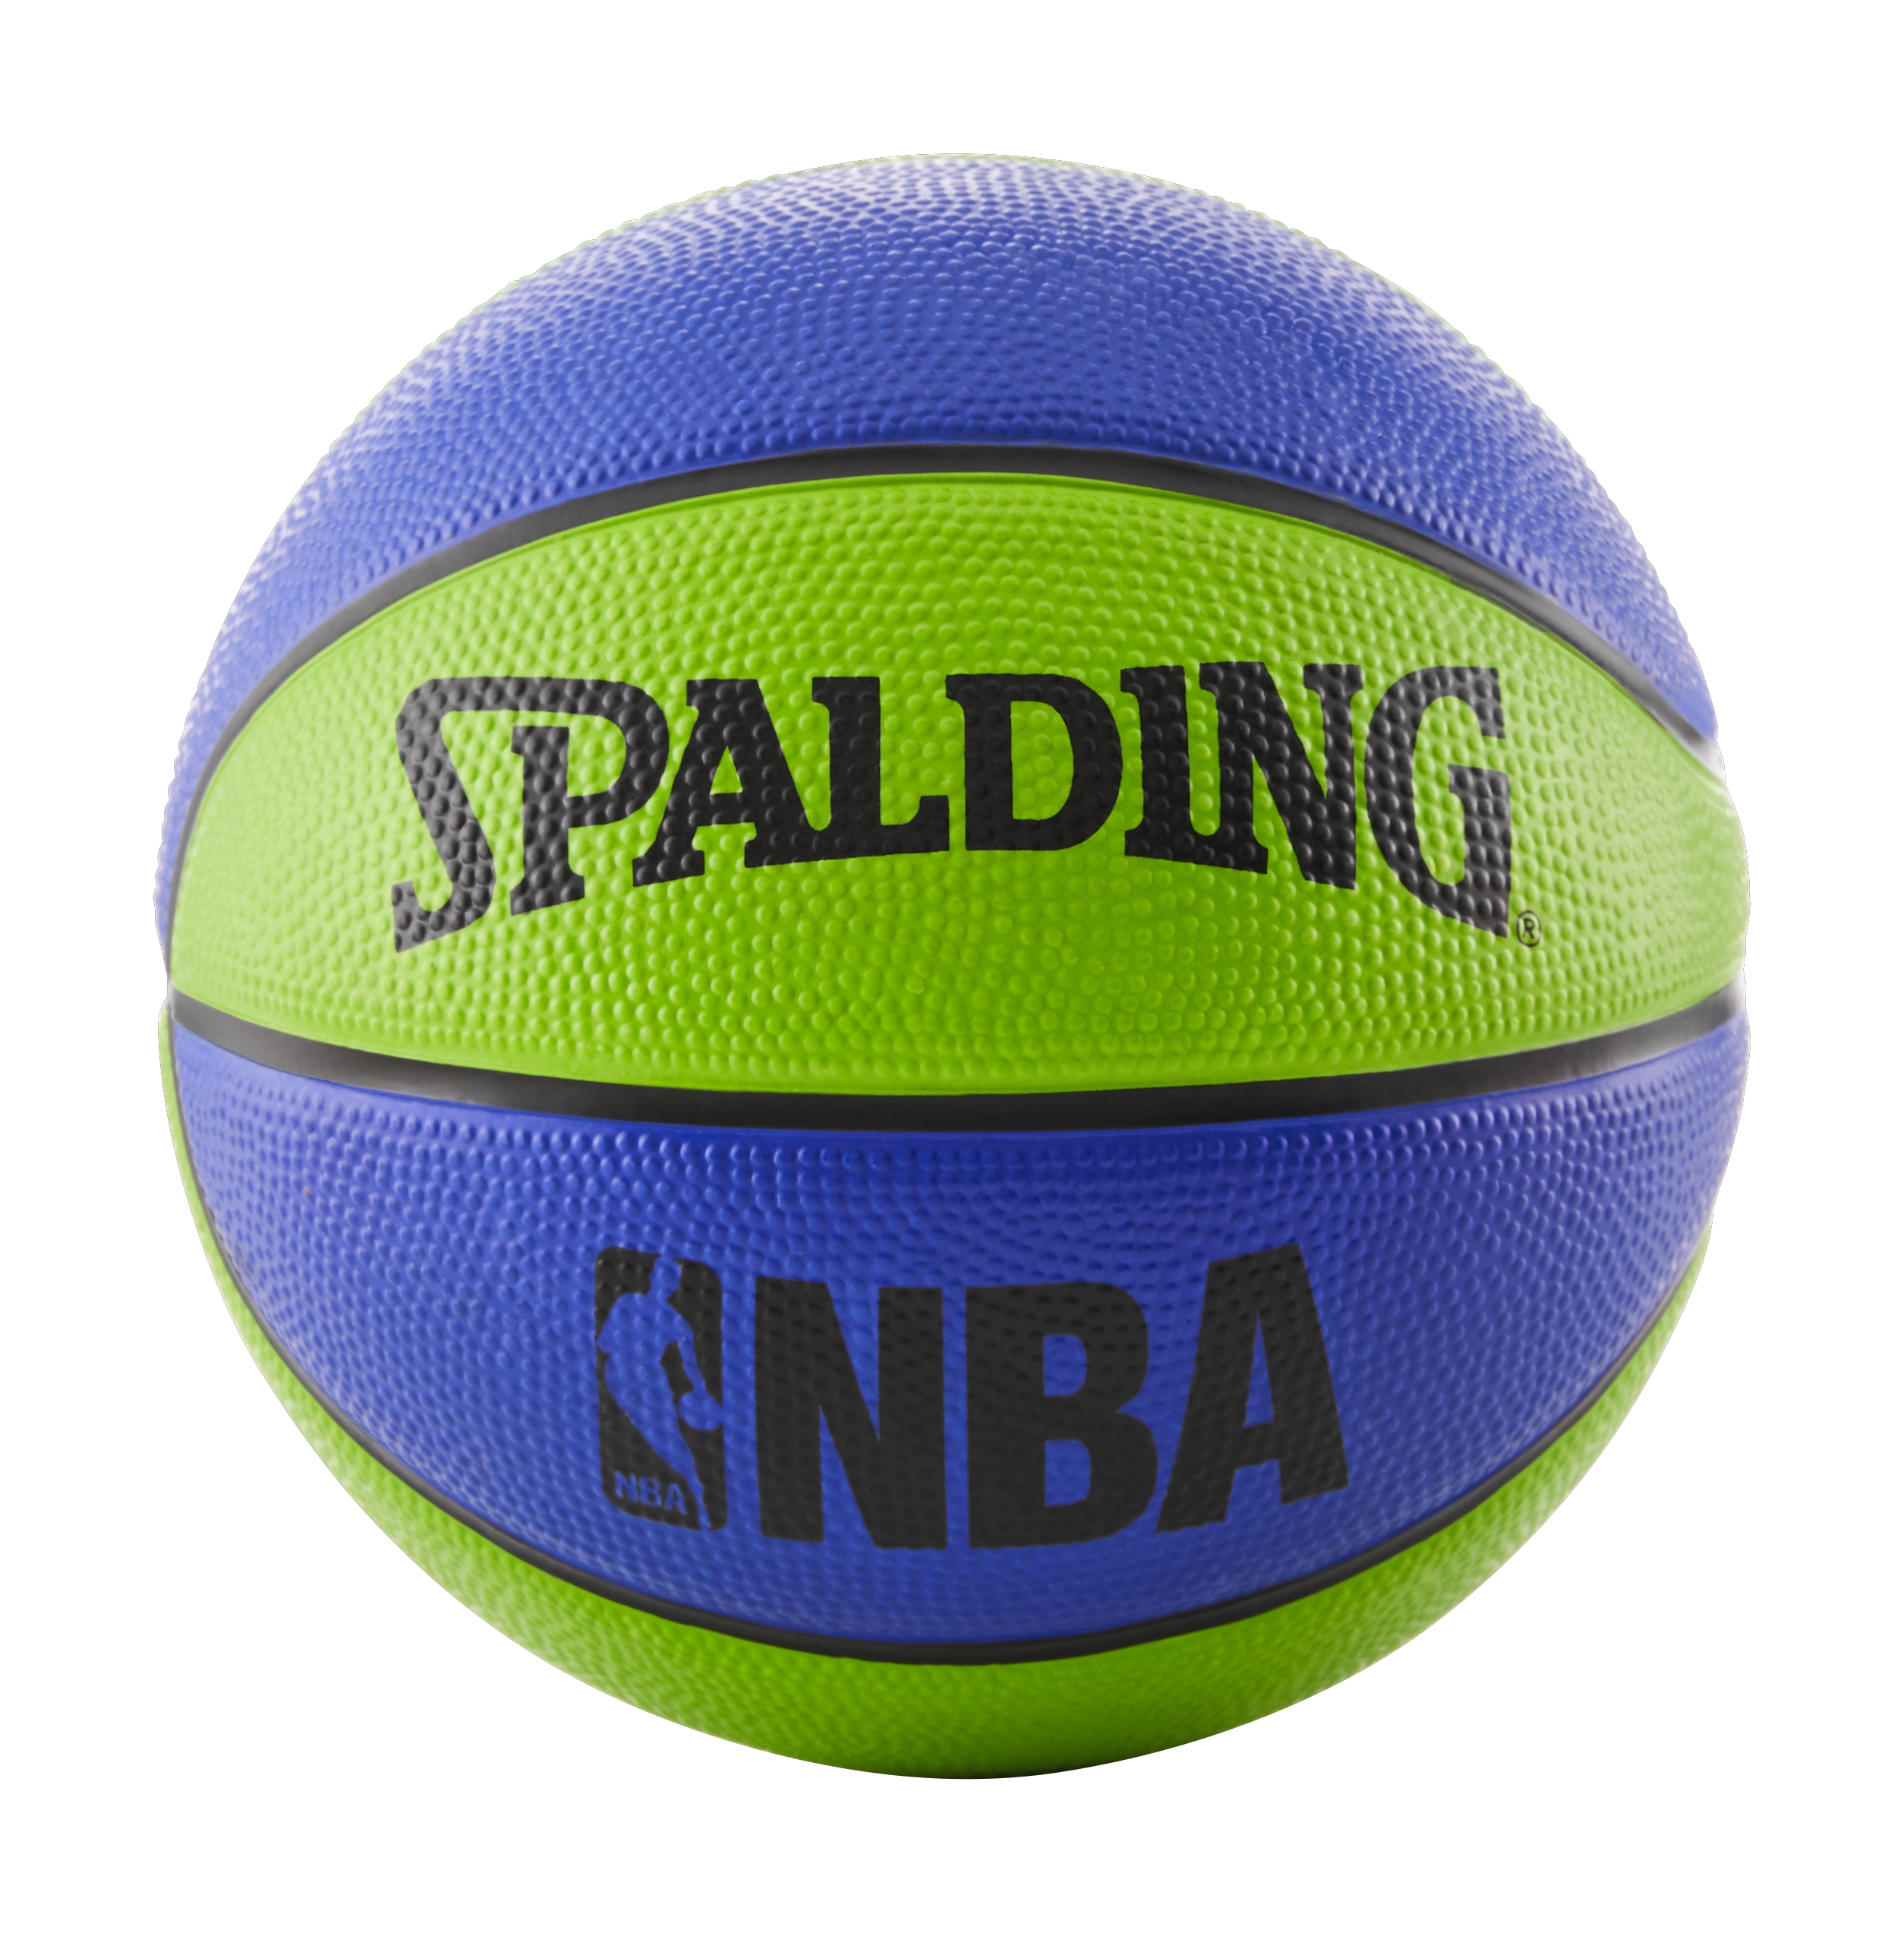 "Spalding NBA Mini 22"" Basketball - Blue/Green"